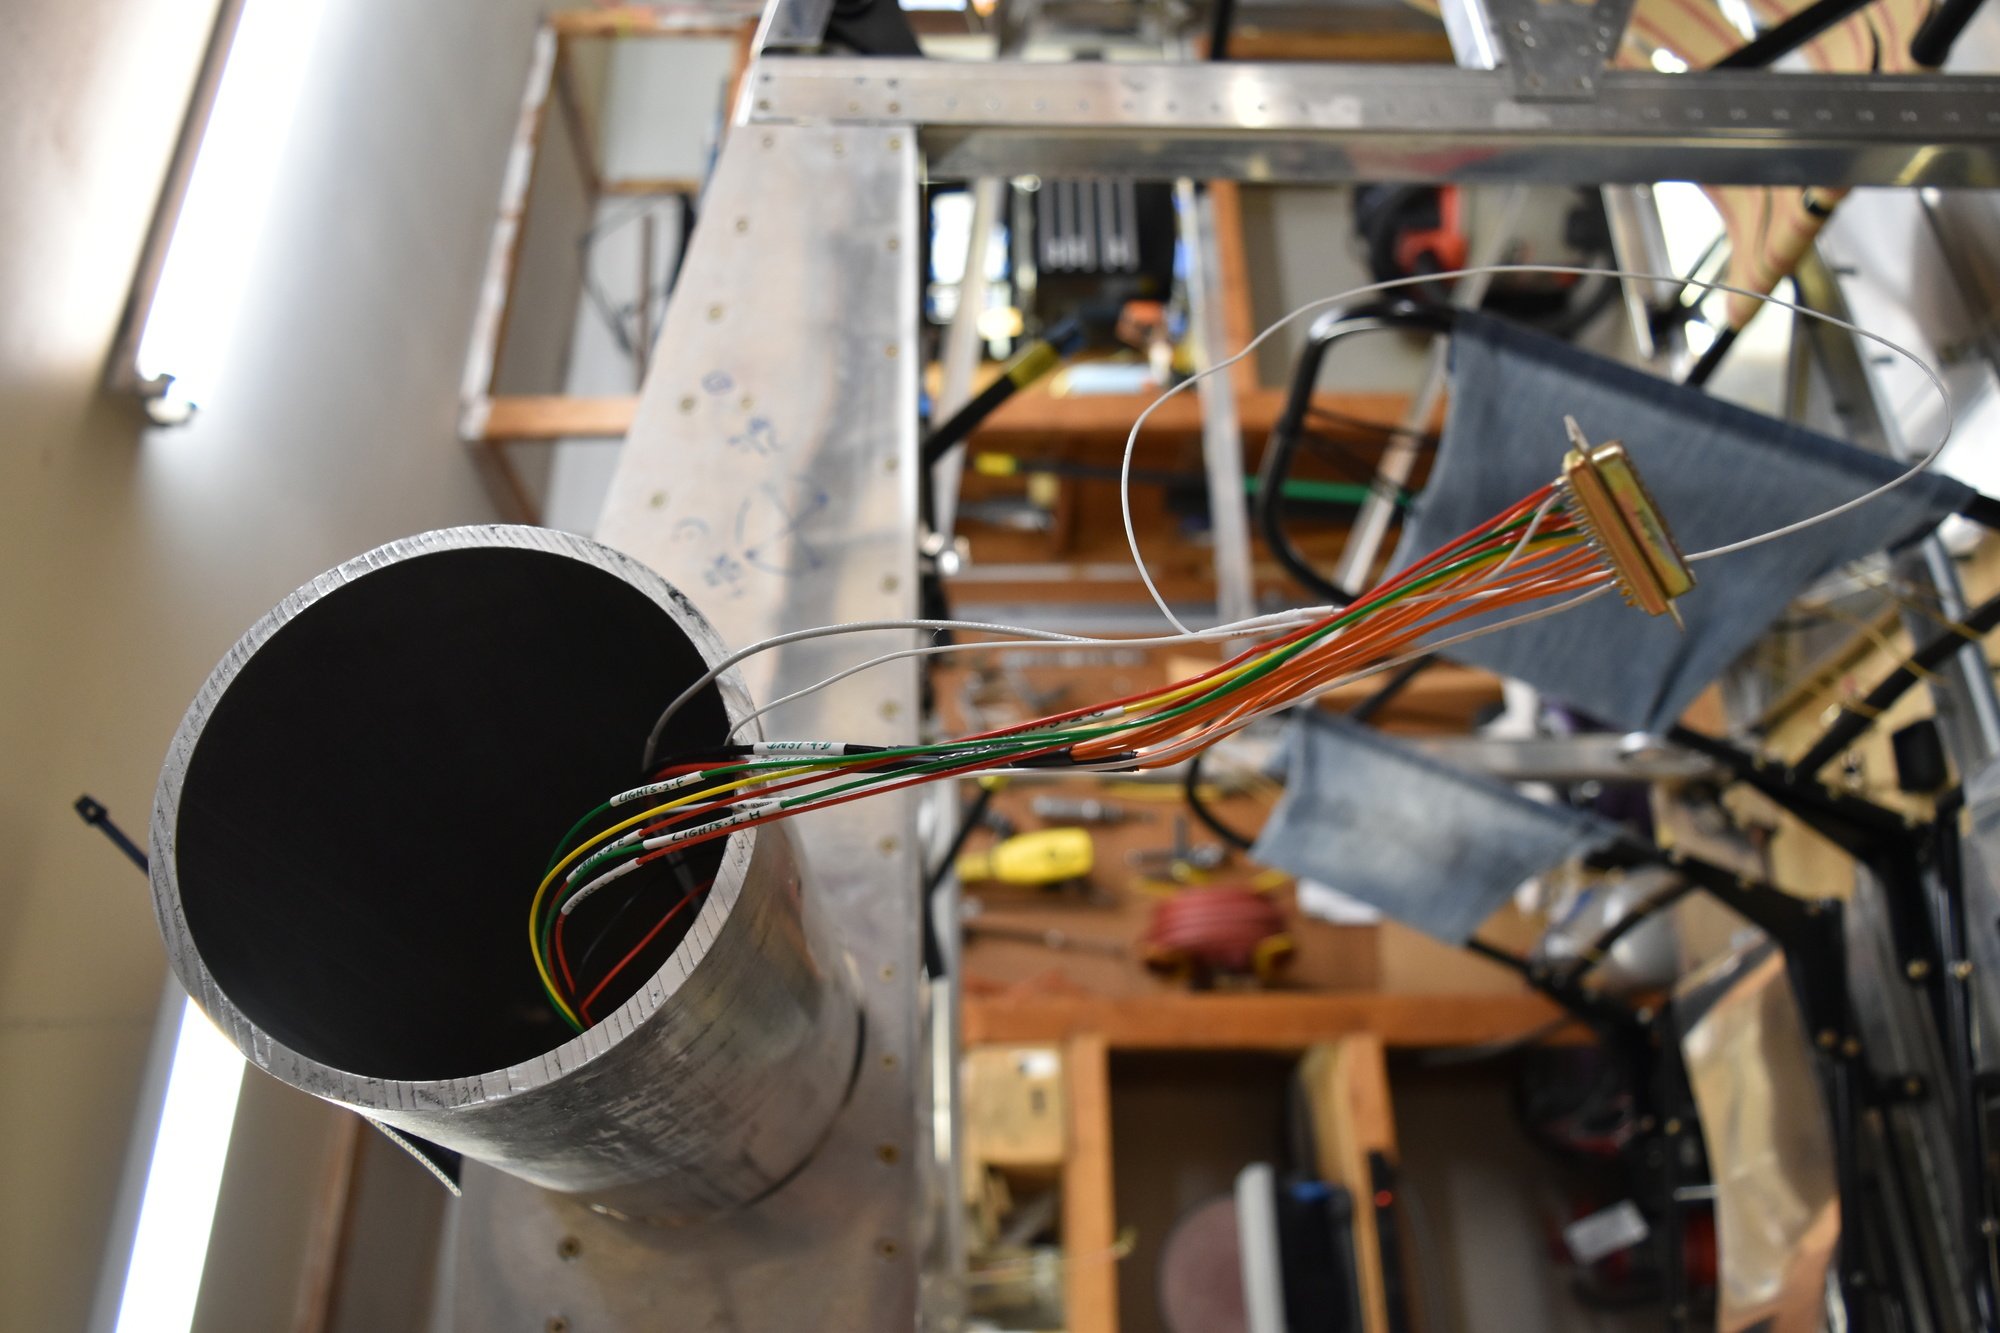 Wiring harness hanging out of Bede BD-4C spar tube